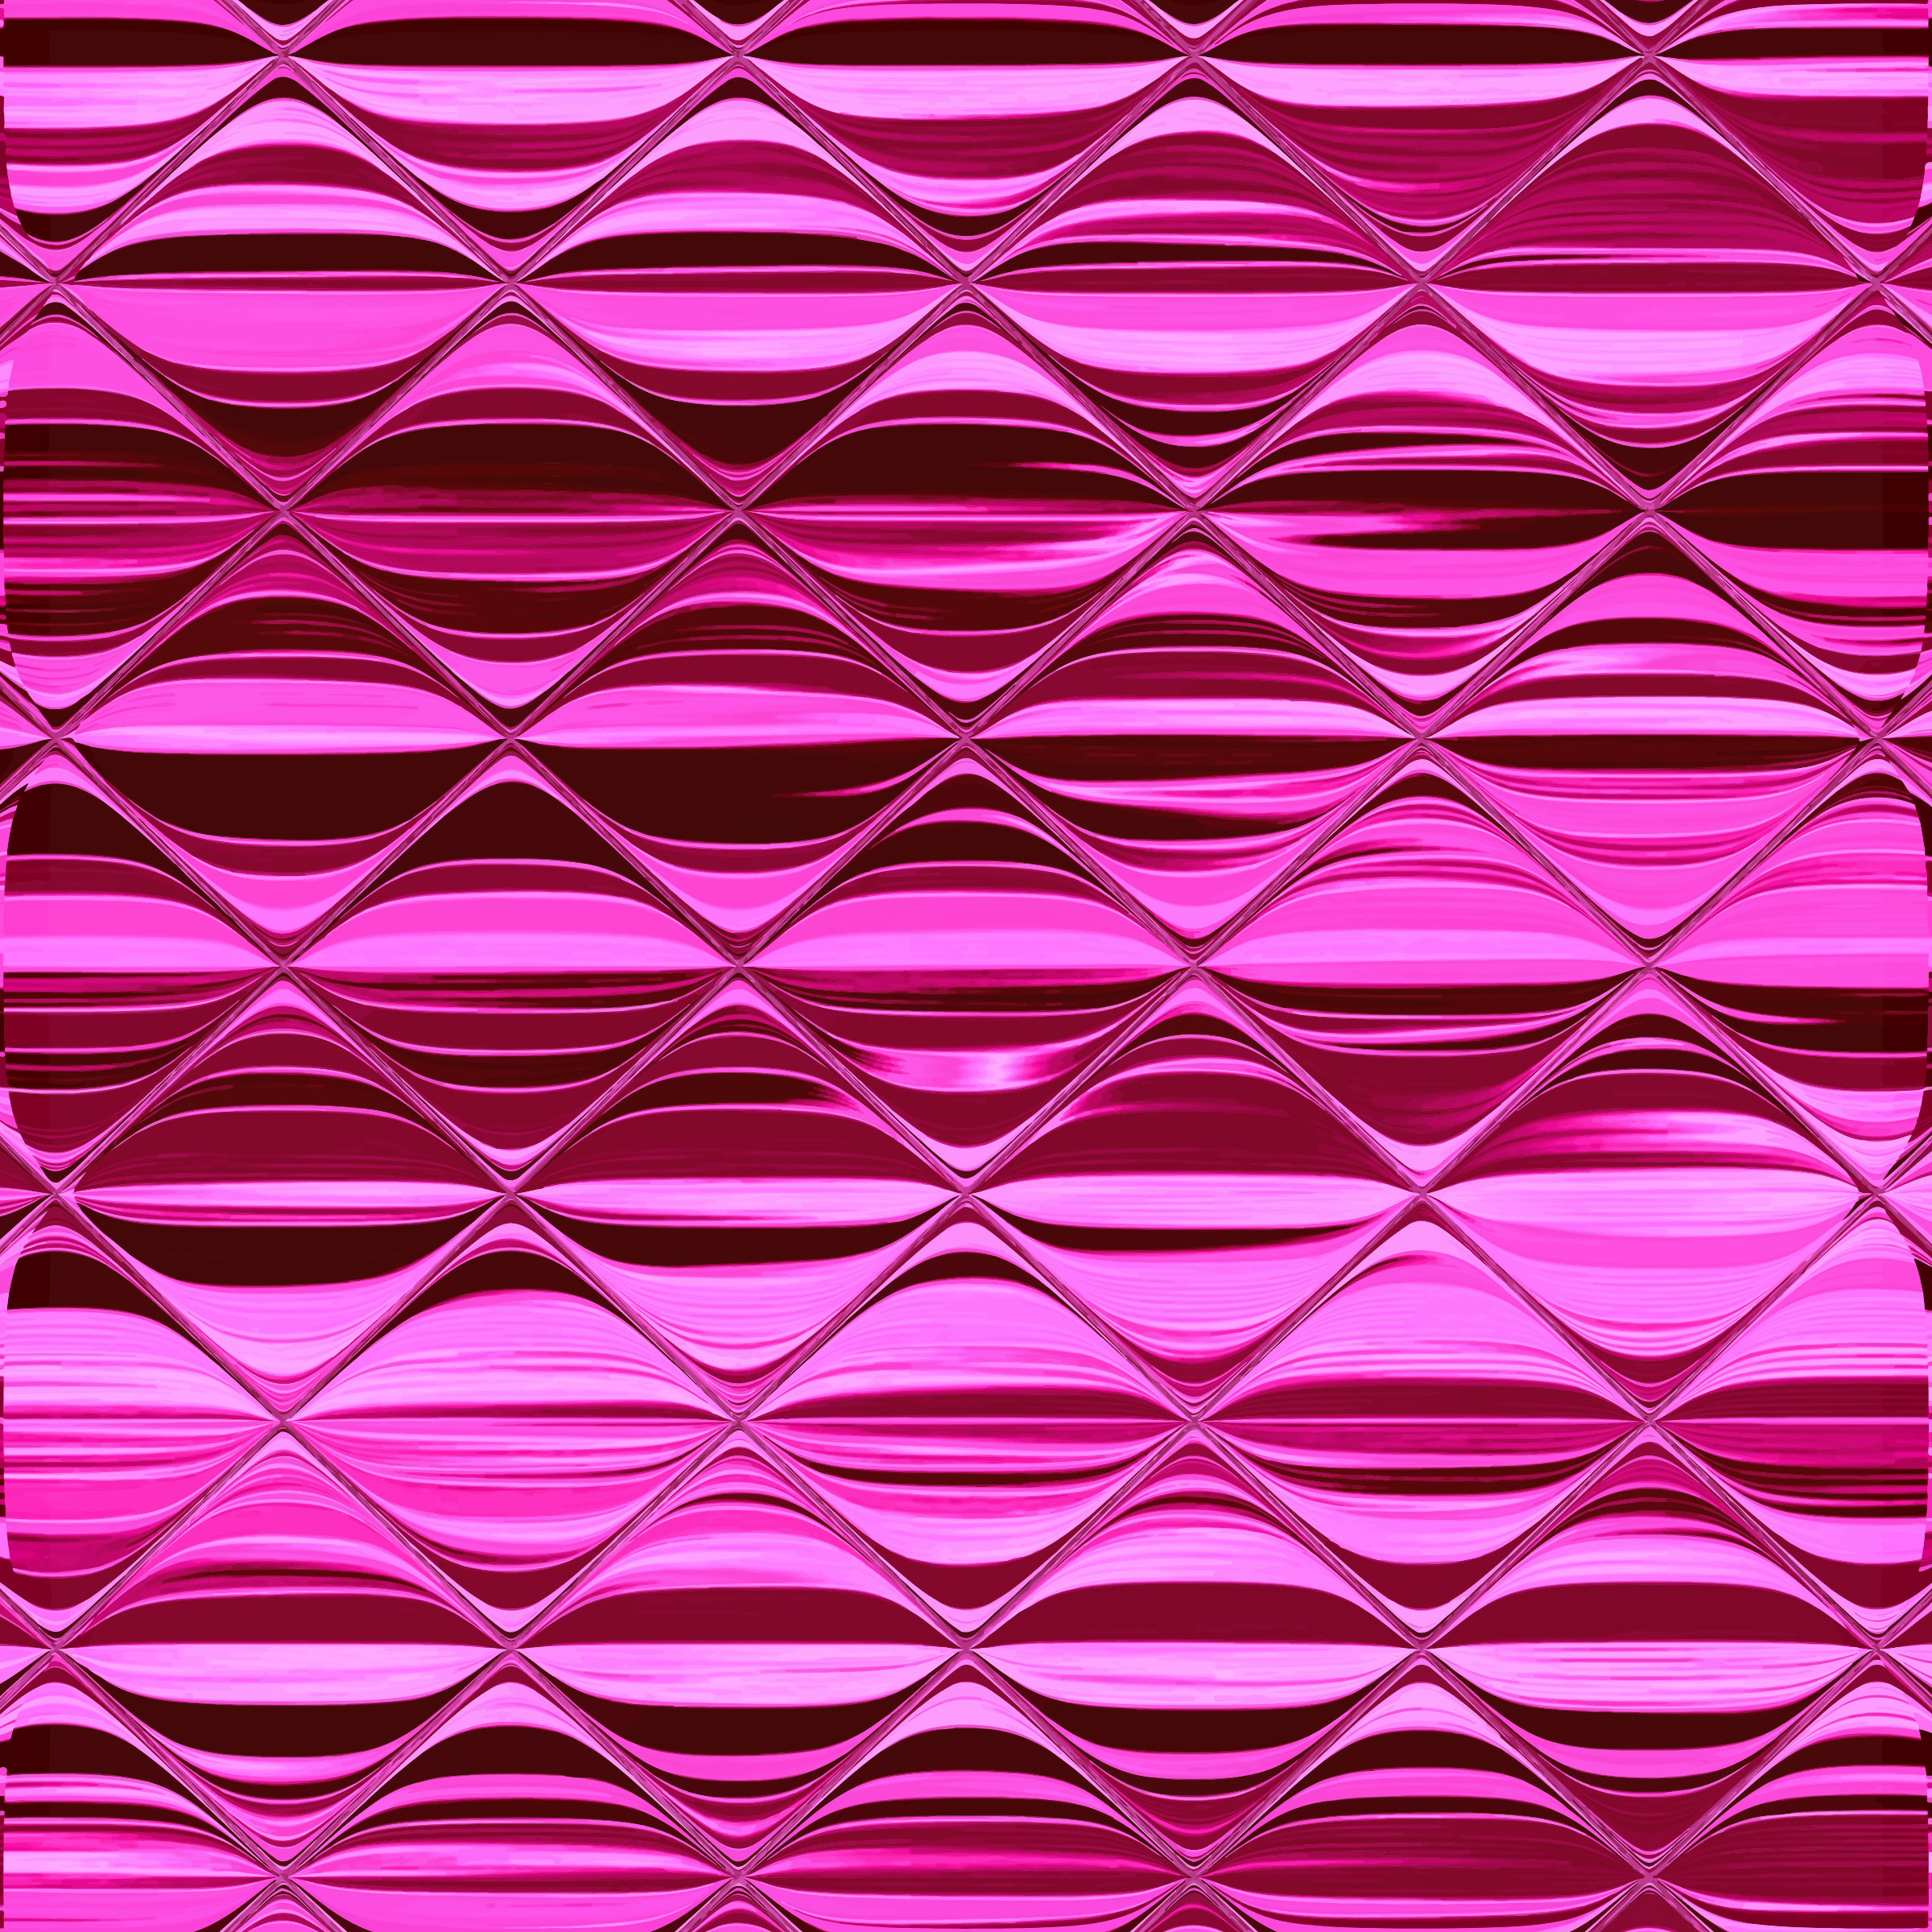 Wavy background 6 (colour 3) by Firkin